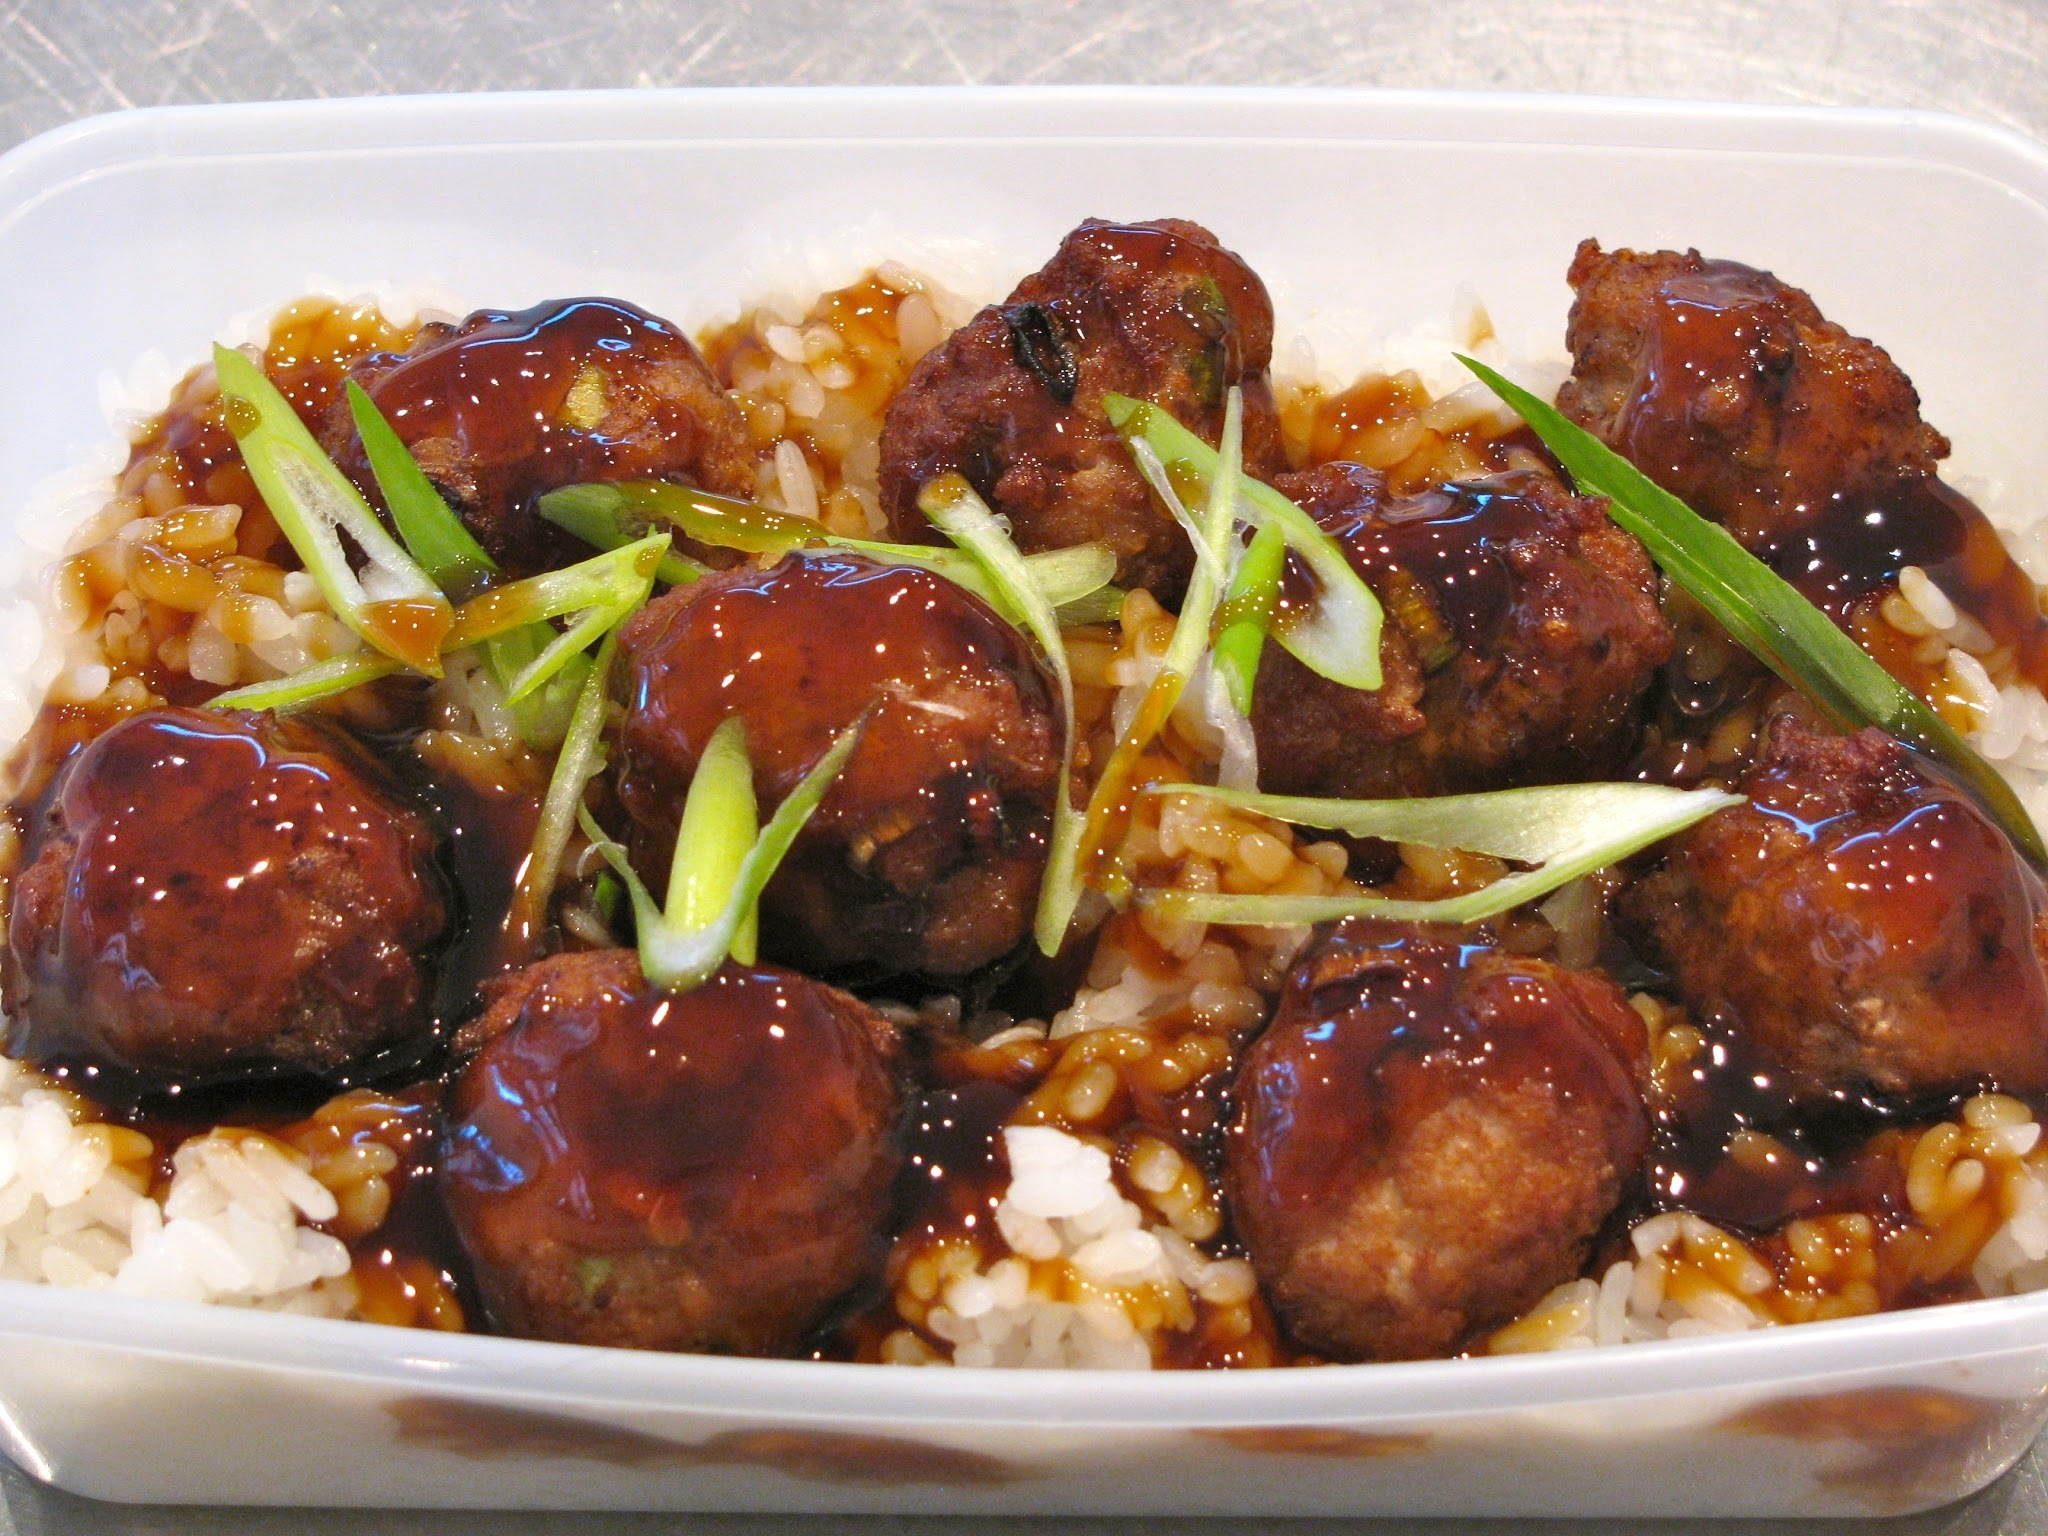 Finn's Lunch - Pork balls with sticky rice